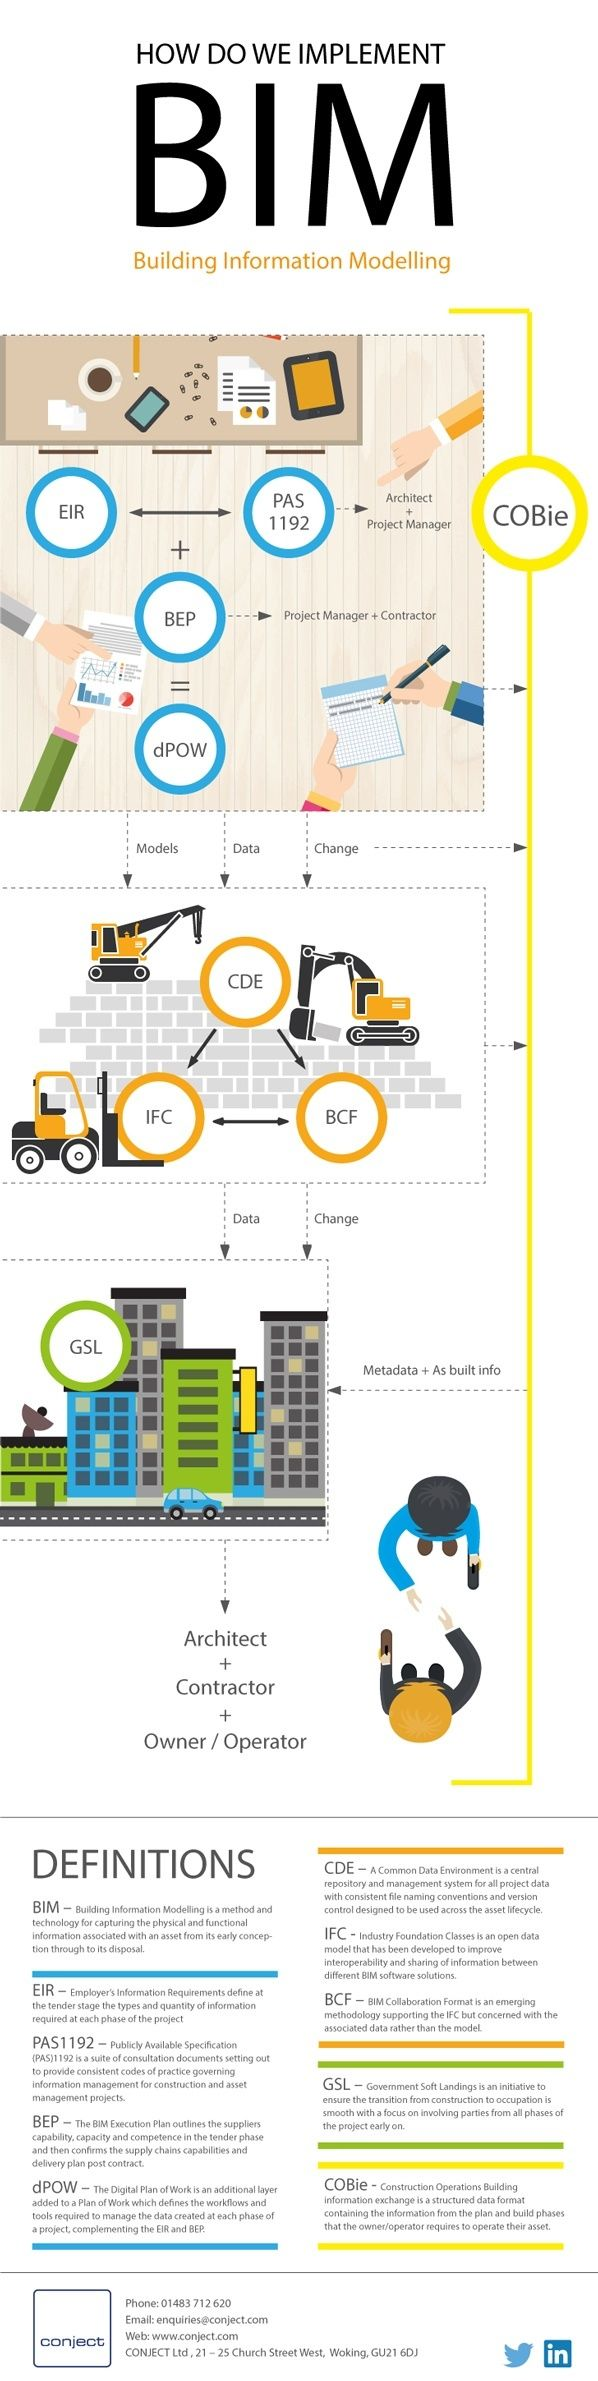 10 BIM Things Infographic